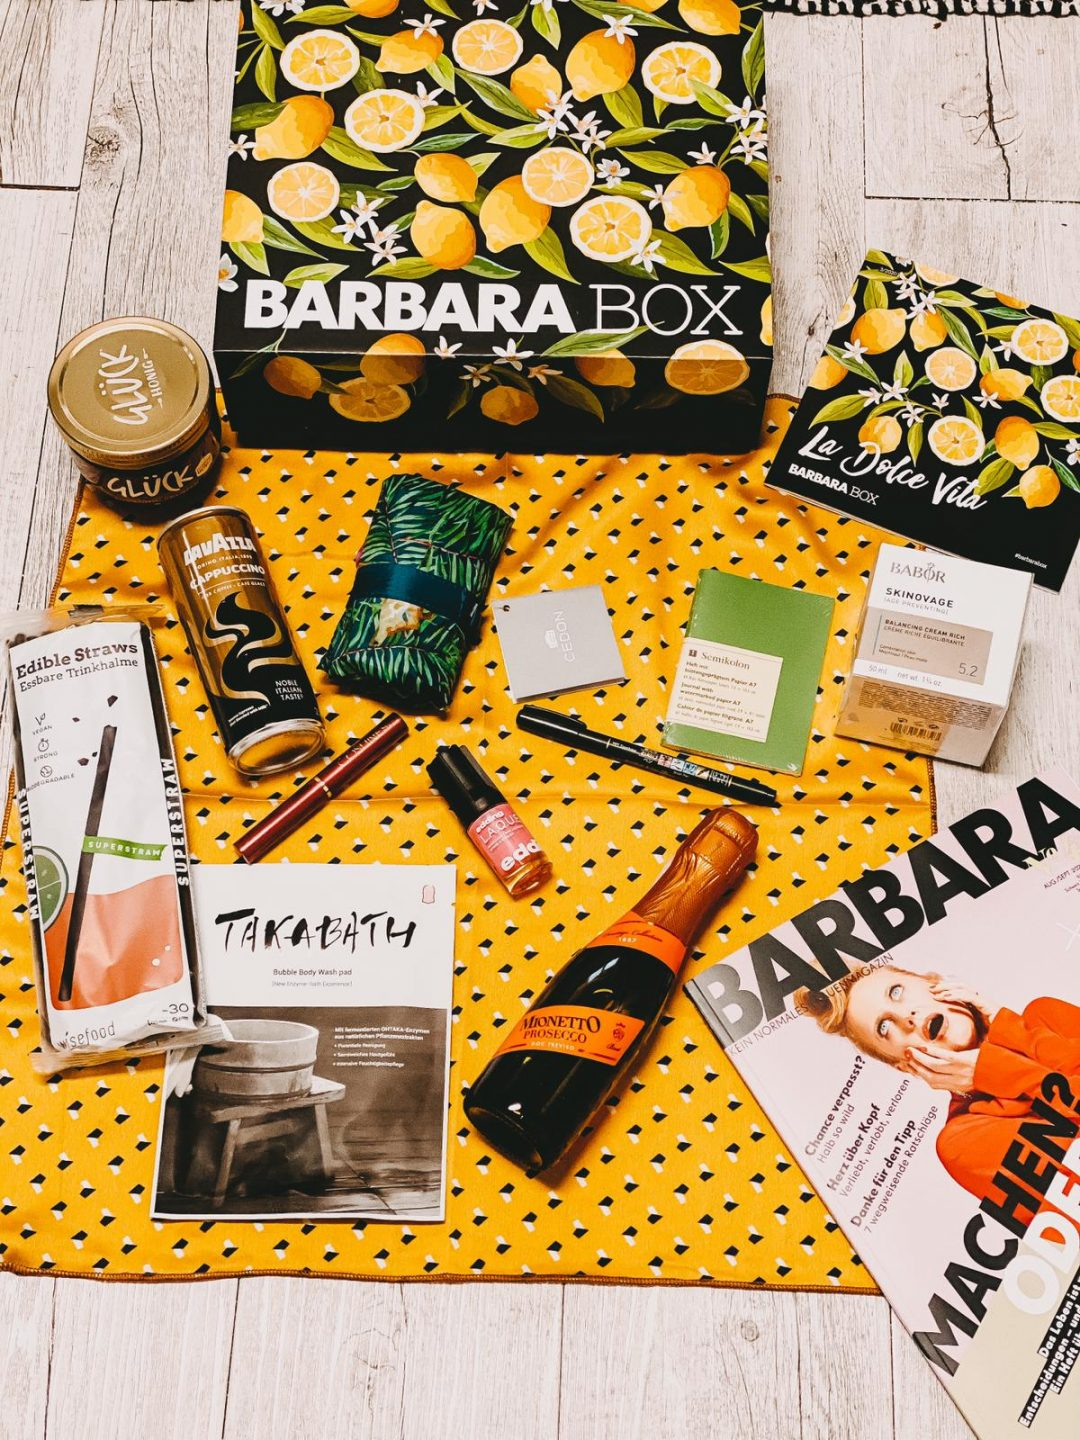 Barbara Box La Dolce Vita